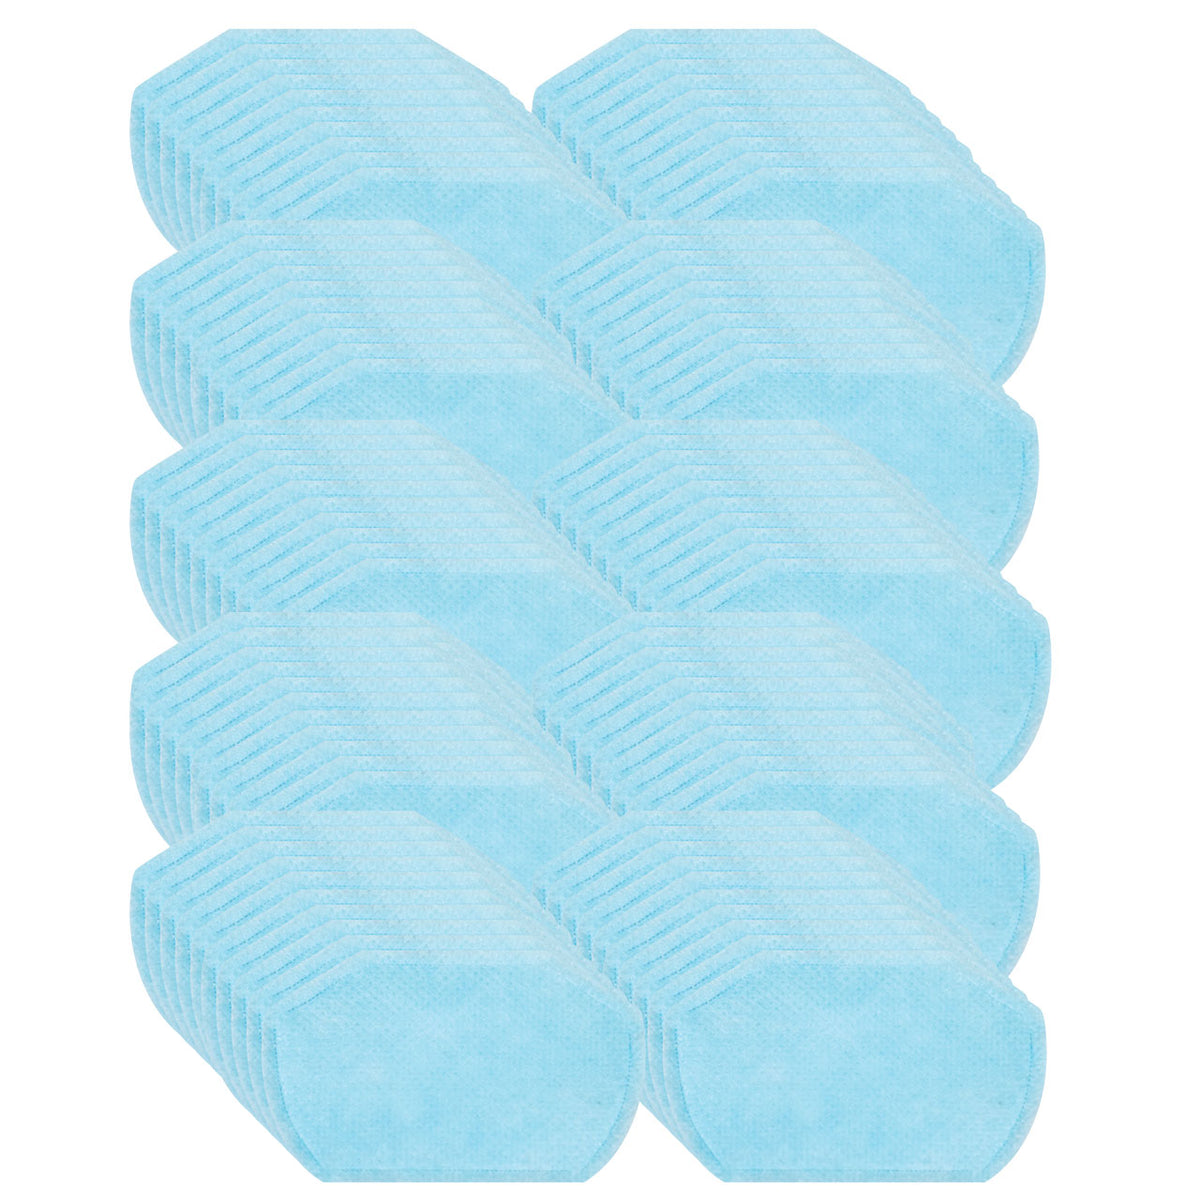 Aspen Air 4-Ply Surgical Filter Refills